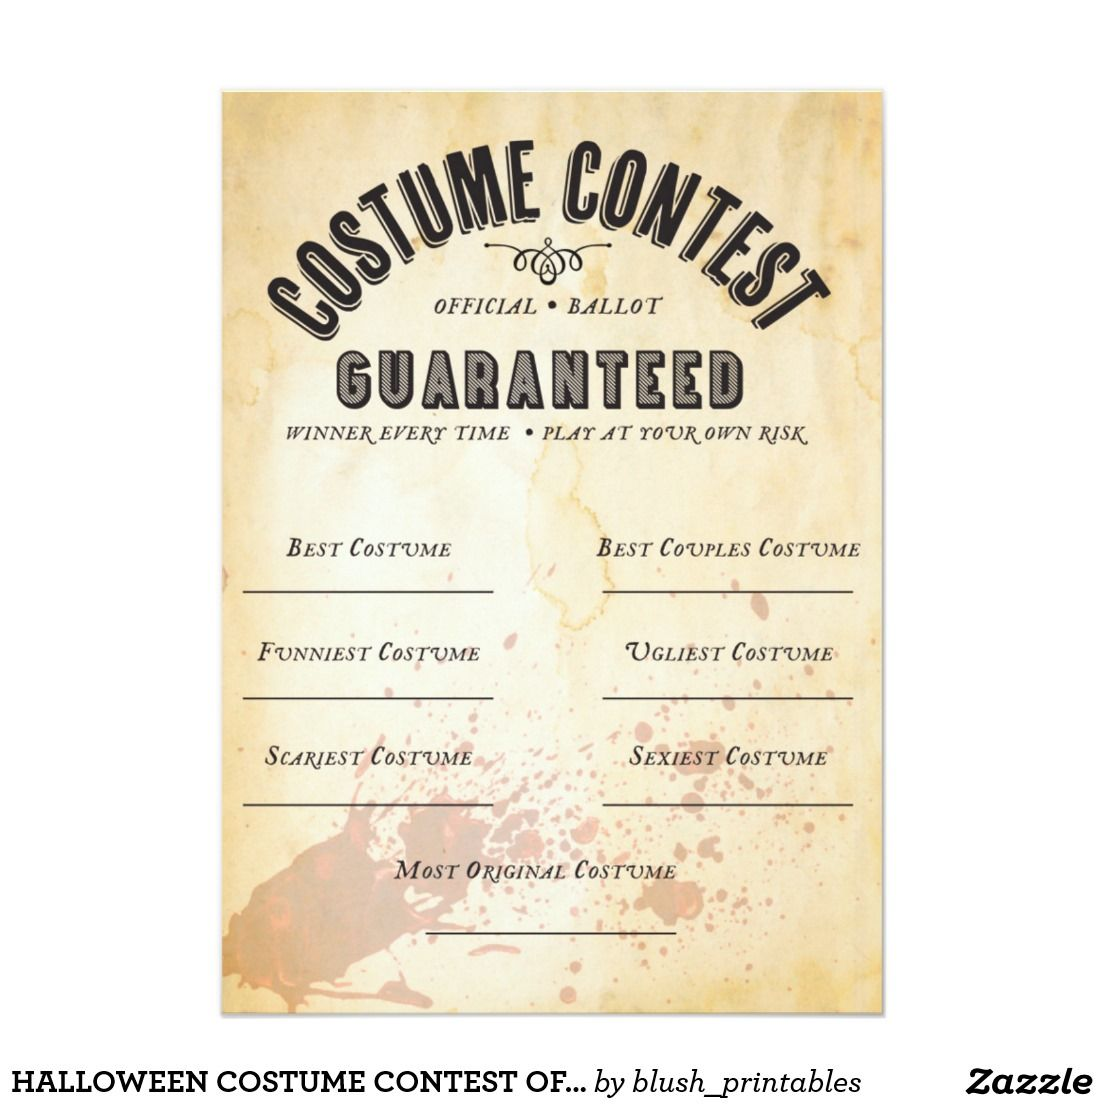 Halloween costume contest official ballot 5x7 paper invitation card halloween costume contest official ballot 5x7 paper invitation card stopboris Image collections